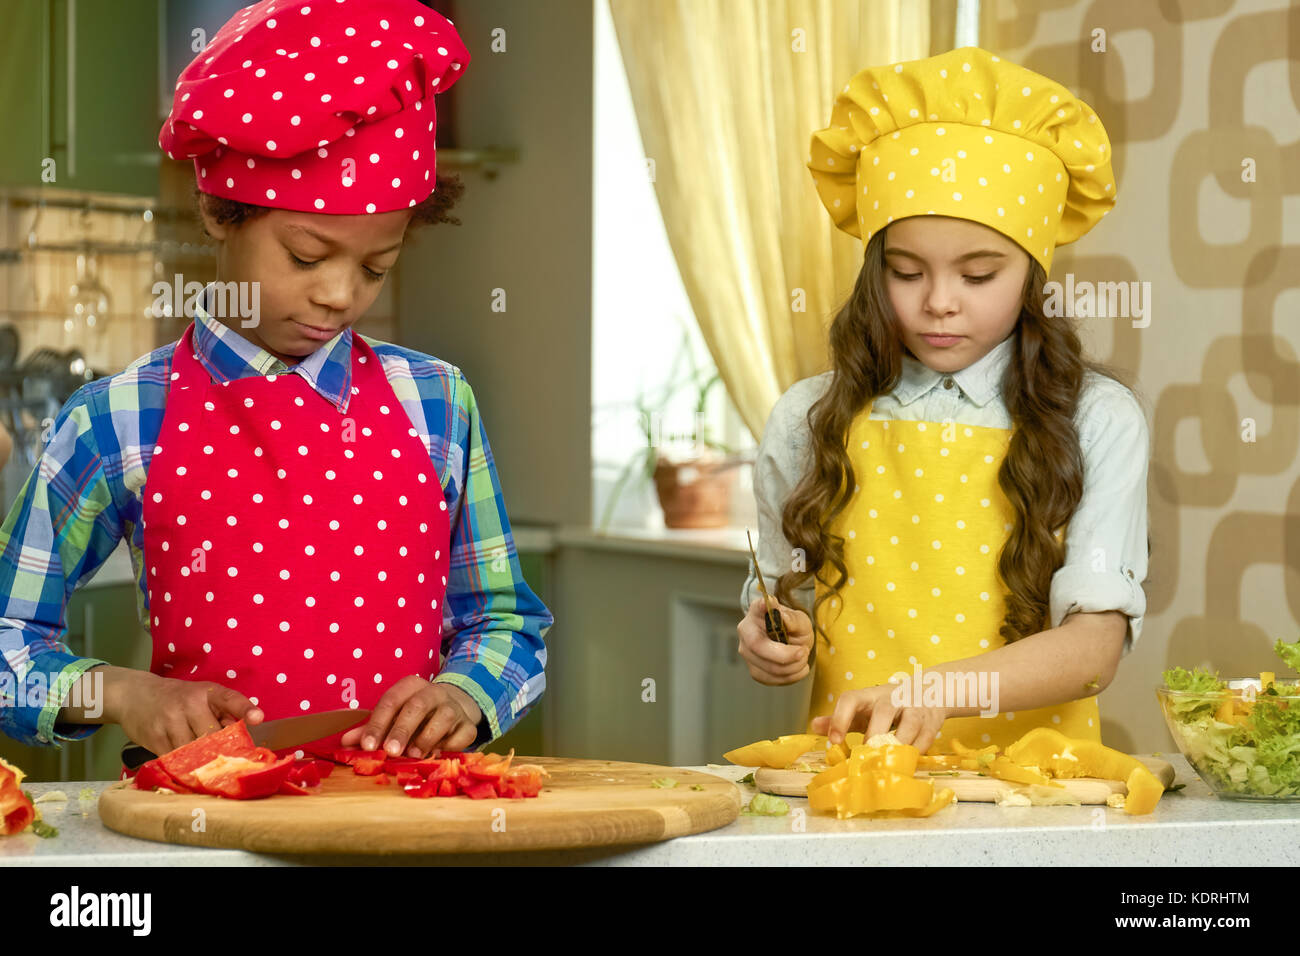 Boy and girl cooking. - Stock Image